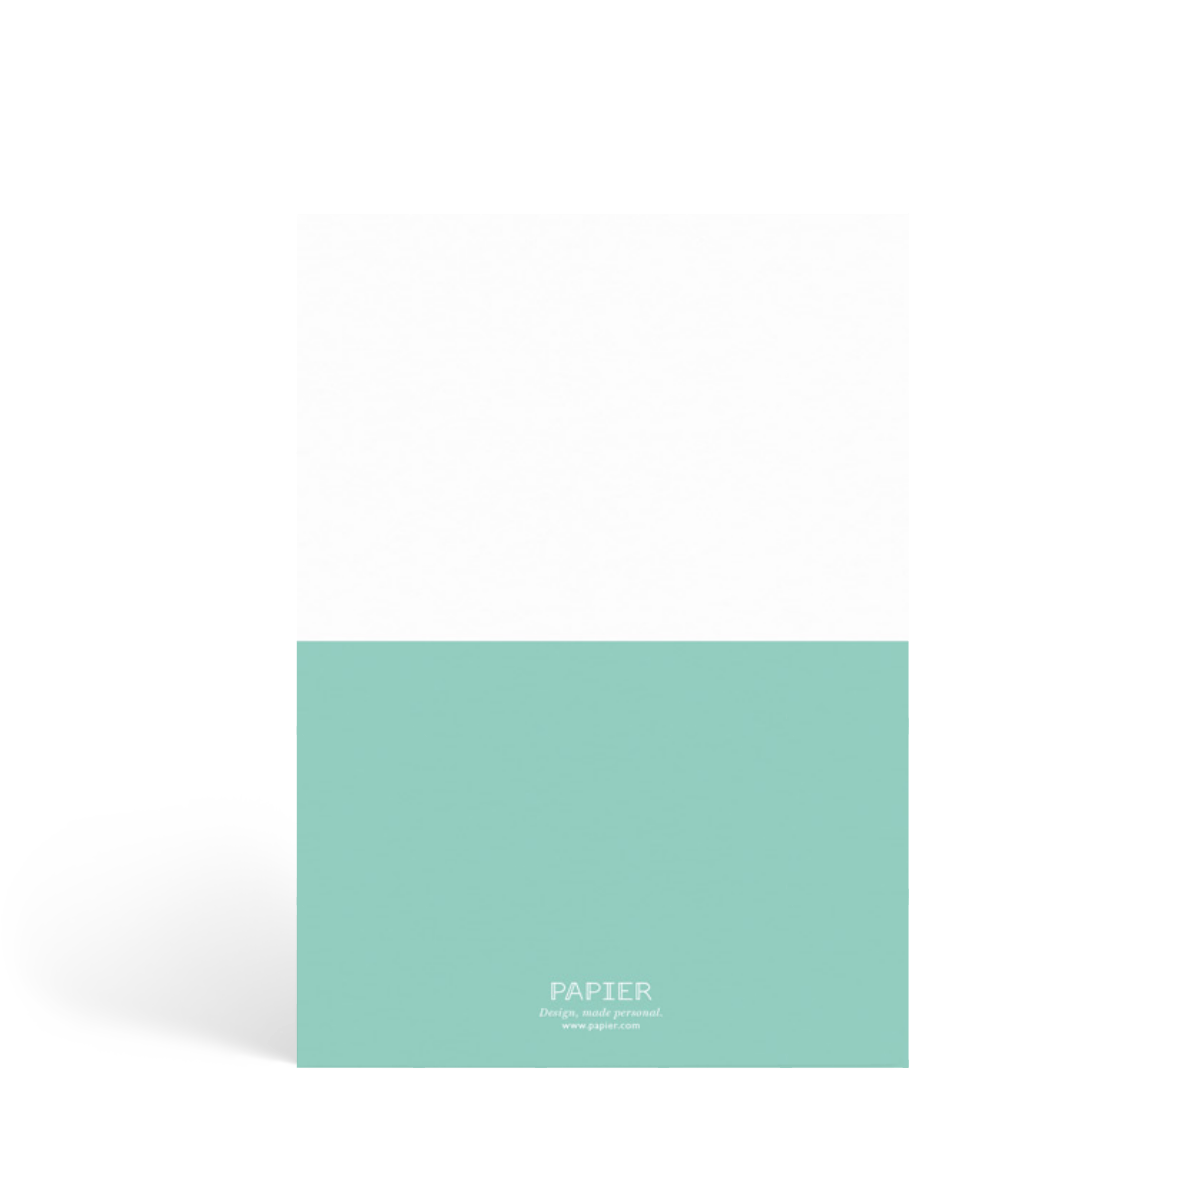 Https%3a%2f%2fwww.papier.com%2fproduct image%2f63801%2f5%2fdemi turquoise 14995 back 1548802573.png?ixlib=rb 1.1